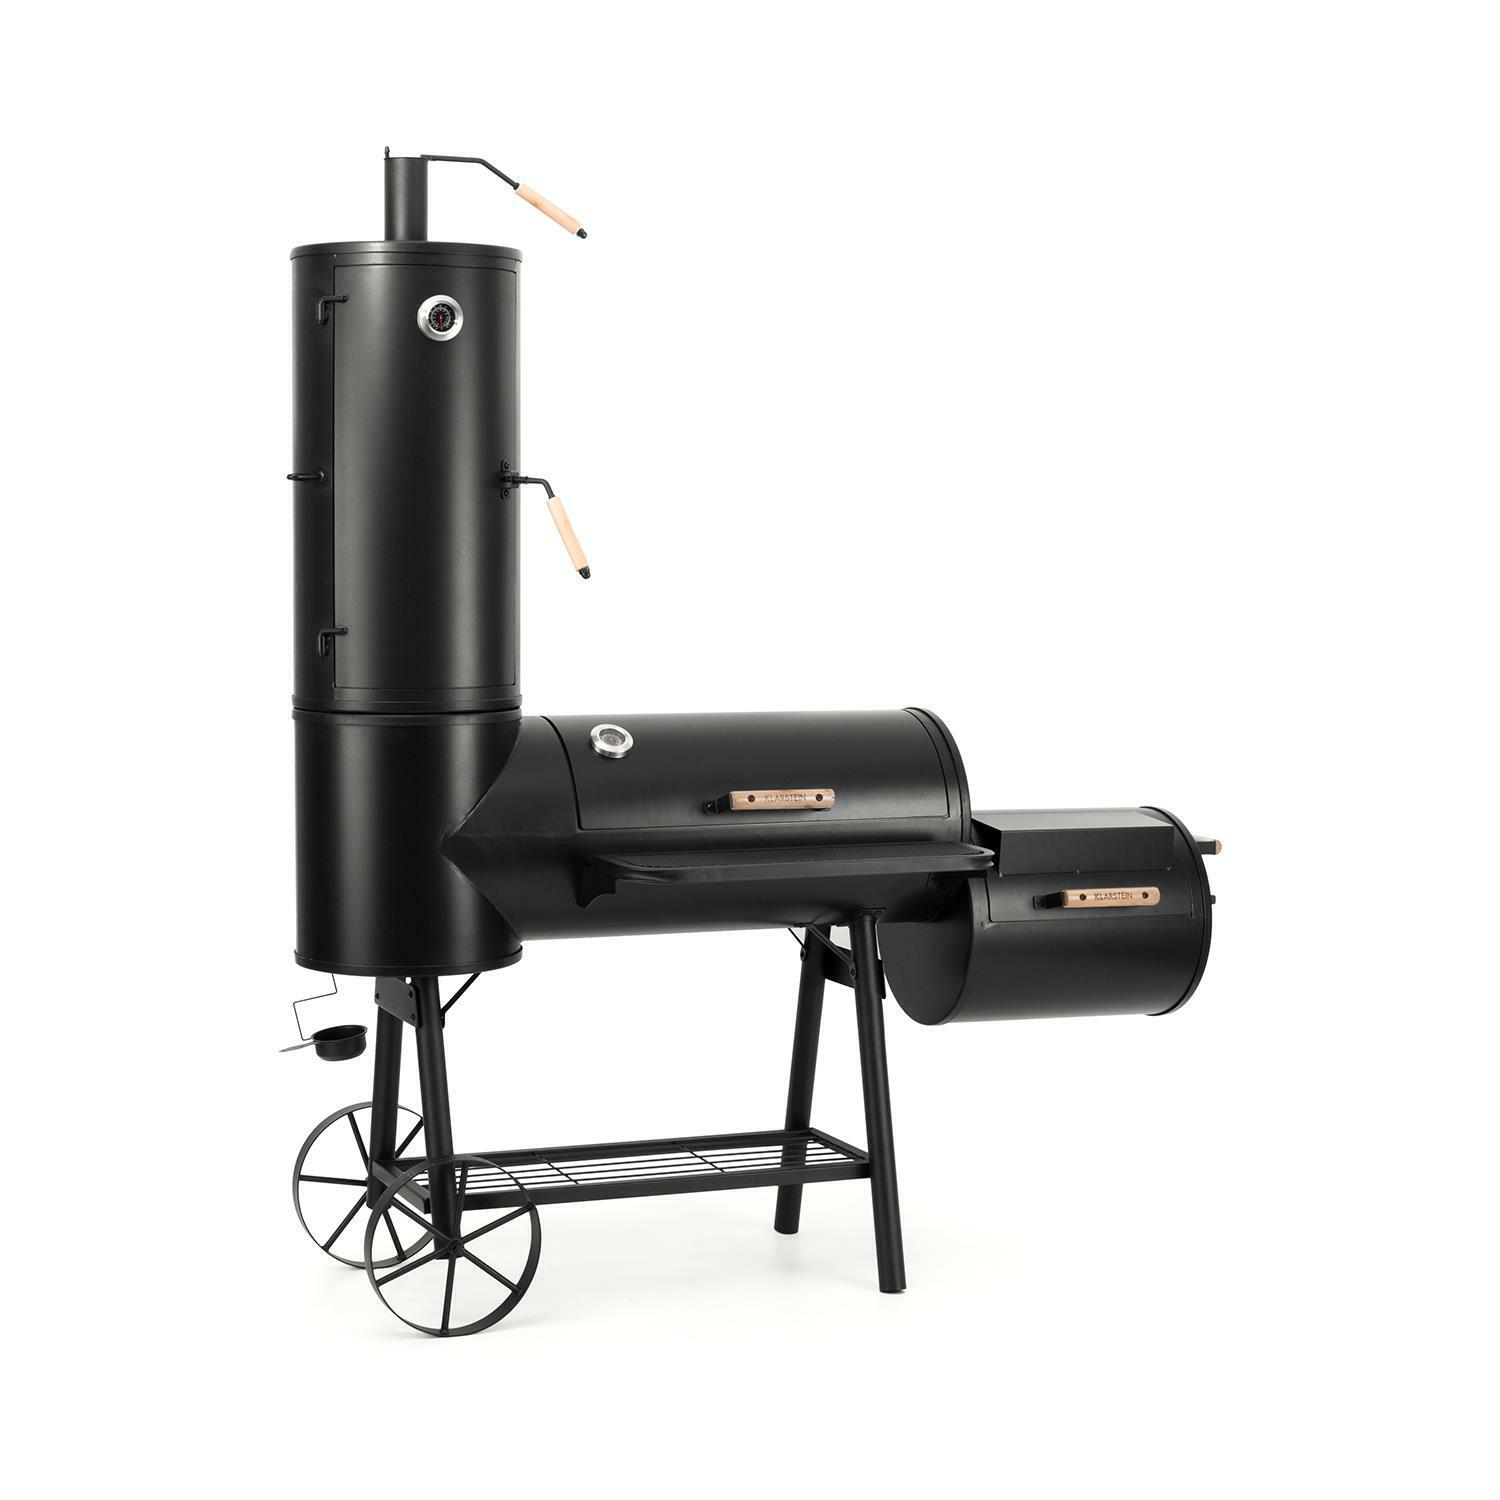 smoker grill grillwagen gartengrill 3 grilleinheiten thermometer stahlblech eur 649 99. Black Bedroom Furniture Sets. Home Design Ideas